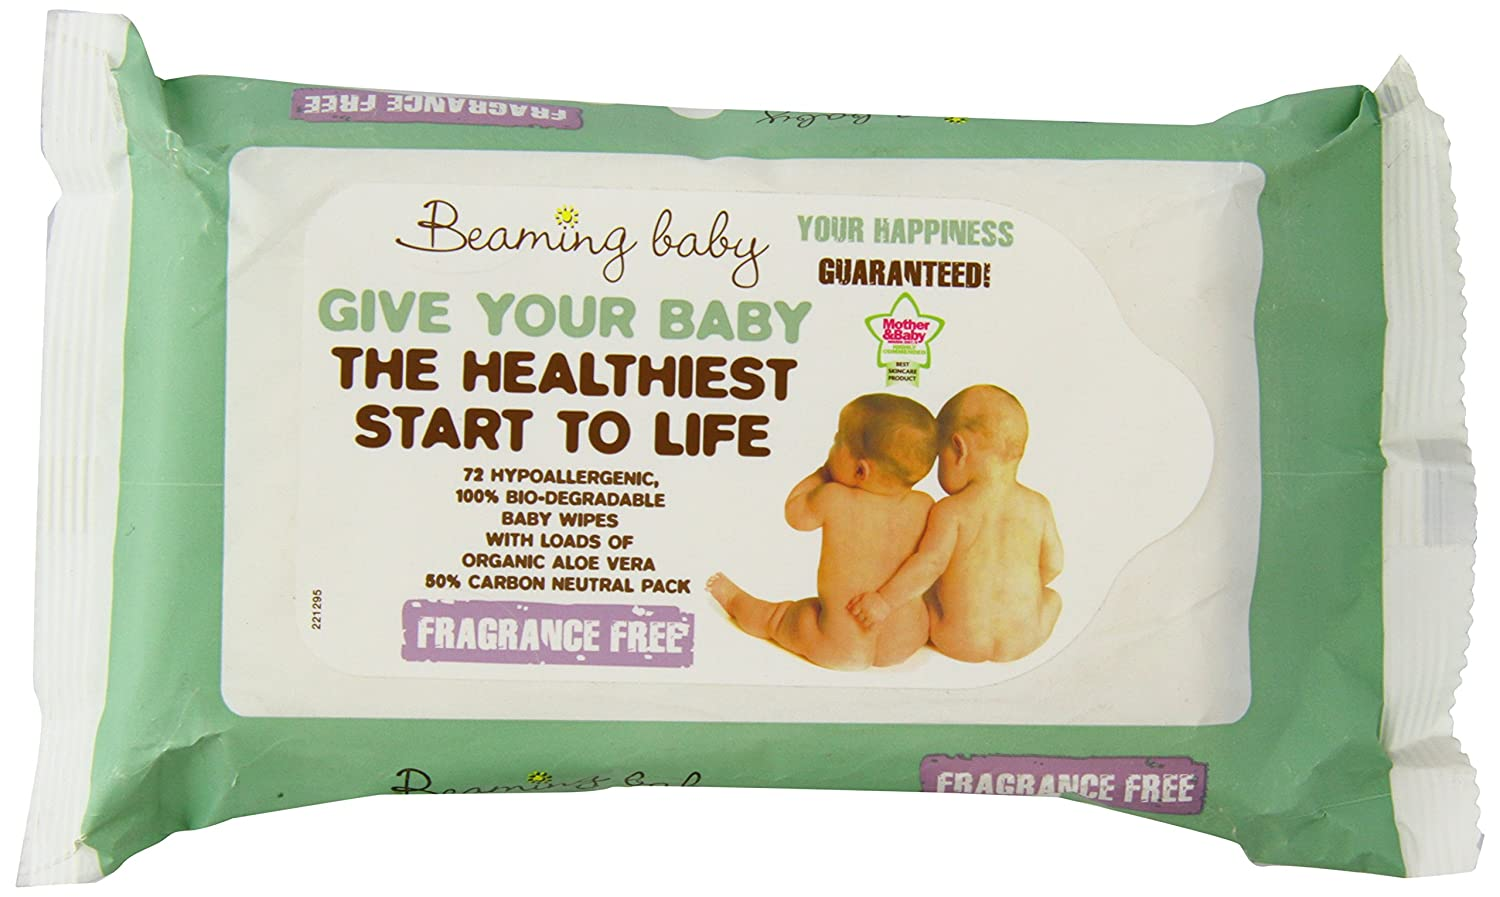 Beaming Baby Organic Fragrance Free Baby Wipes - Pack of 72 Baby Wipes 75253